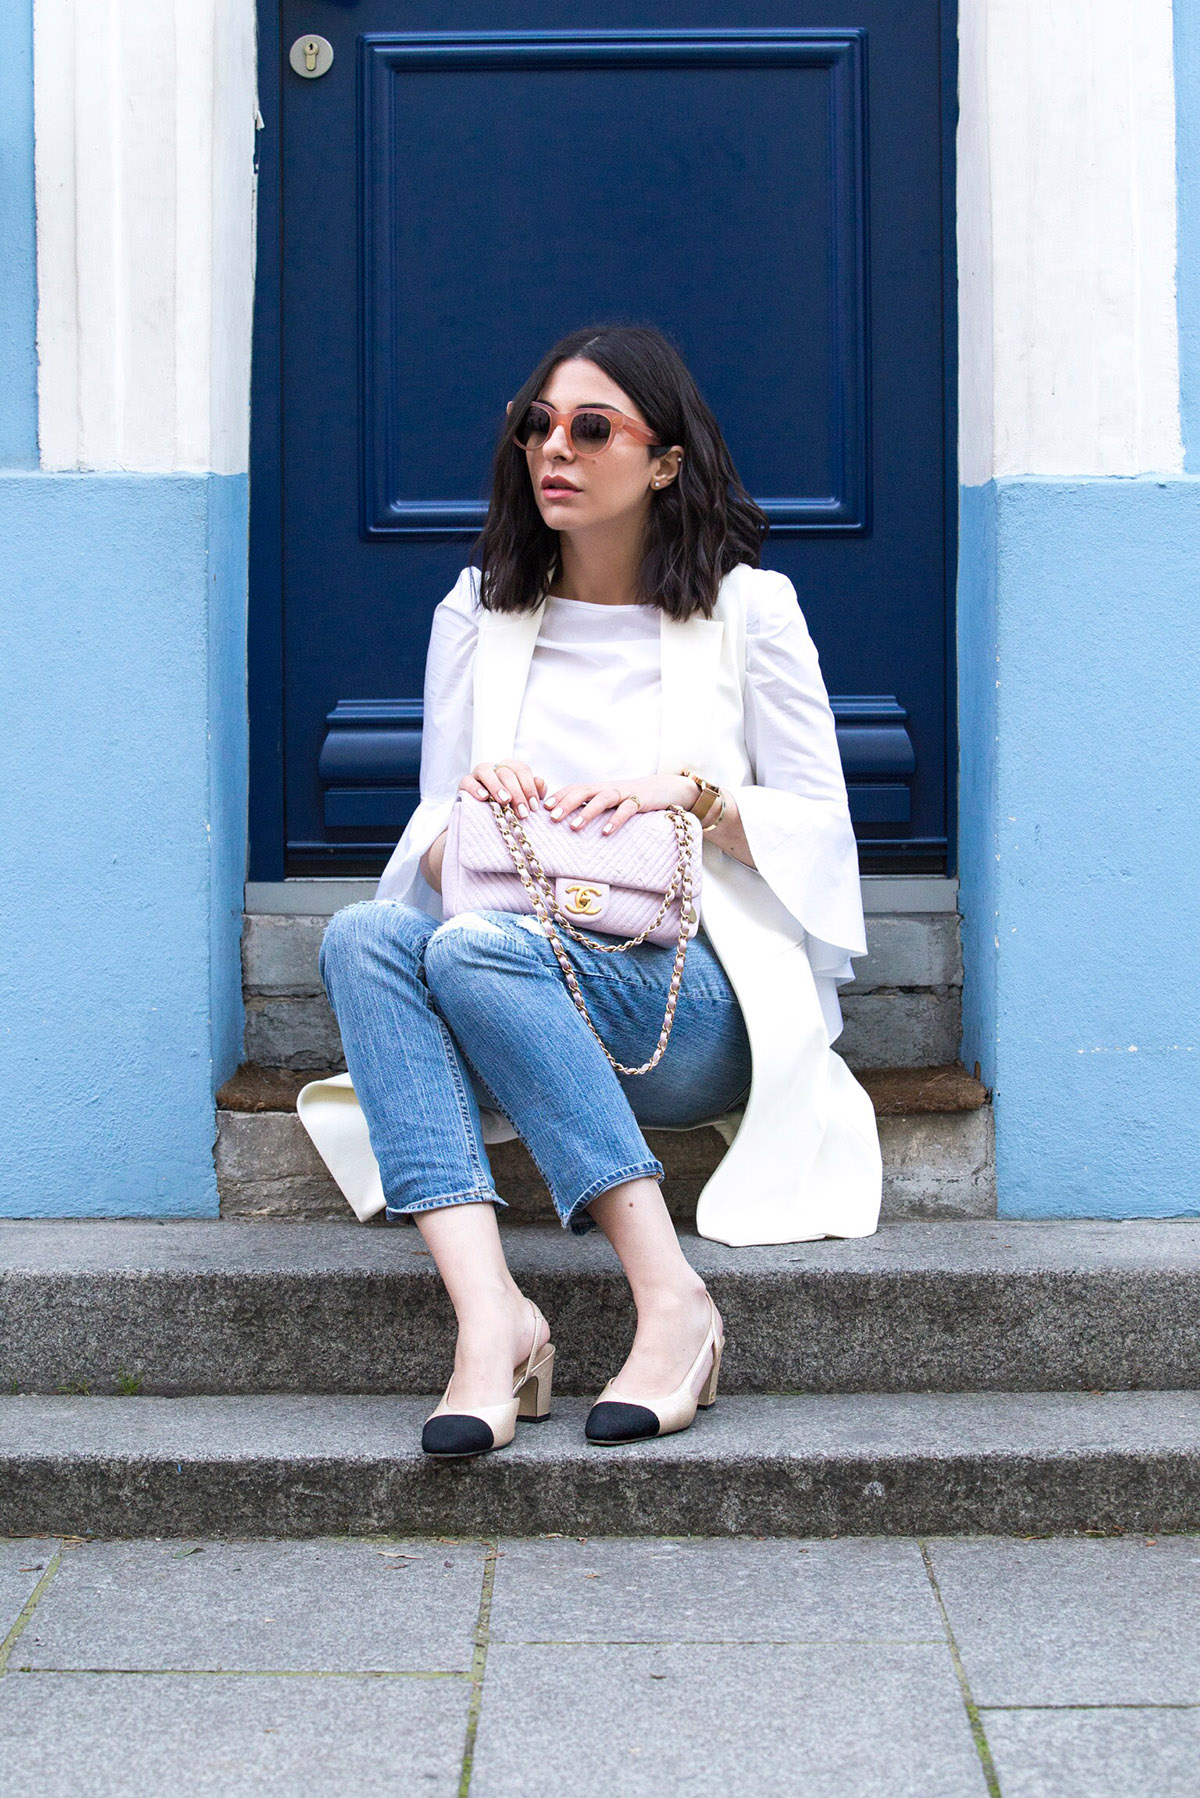 Stella Asteria wearing jeans and Chanel slingbacks, Chanel pink leather chevron bag